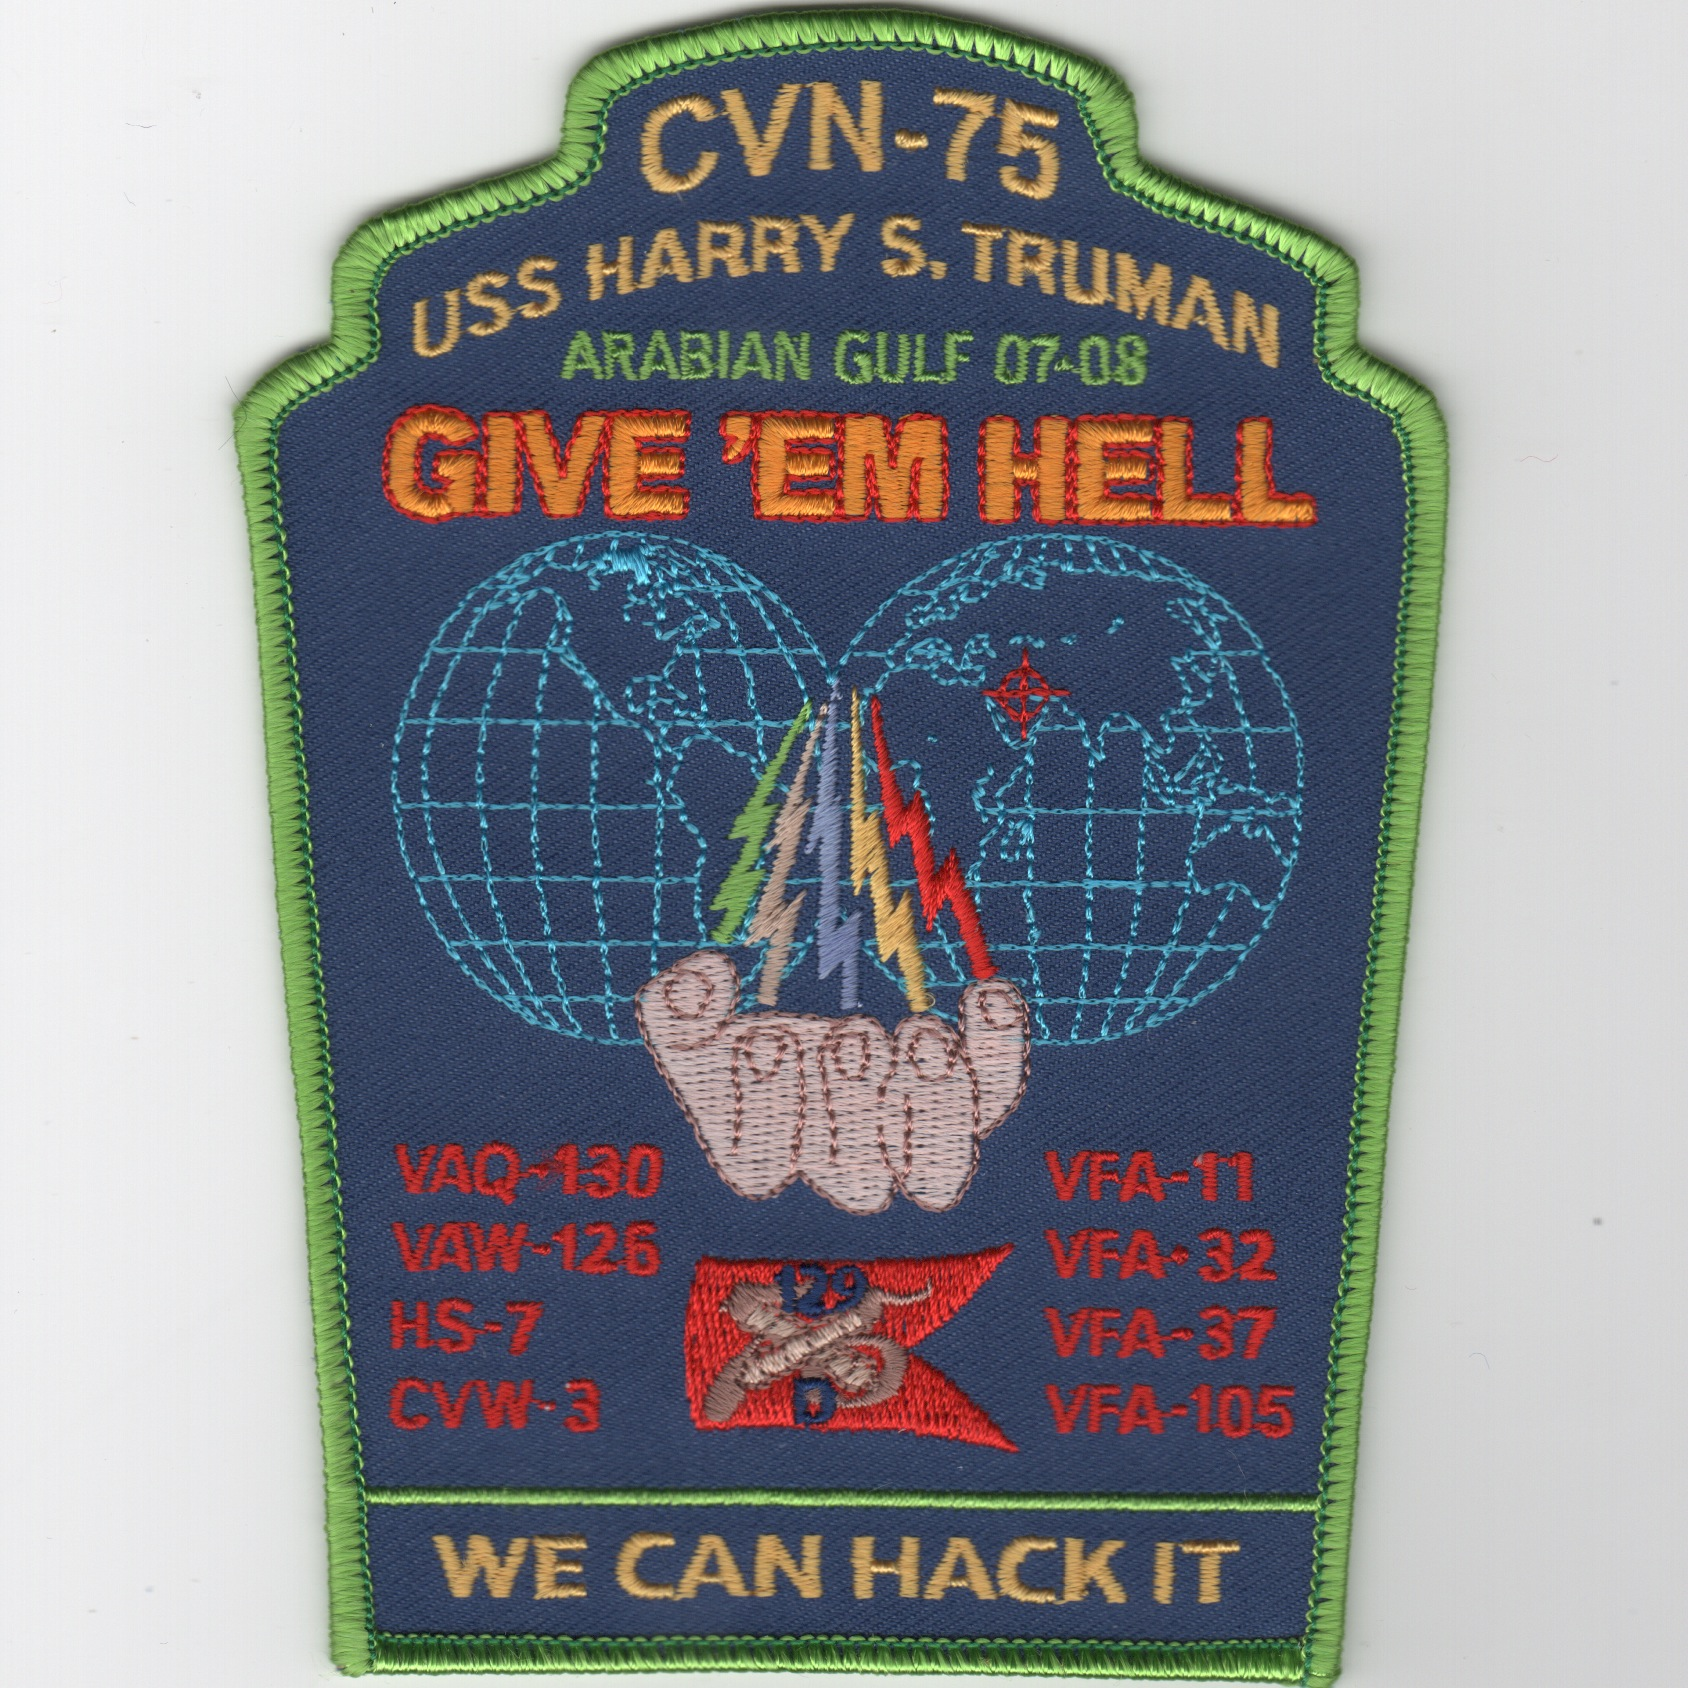 CVN-75 2007-08 'Hack It' Cruise Patch